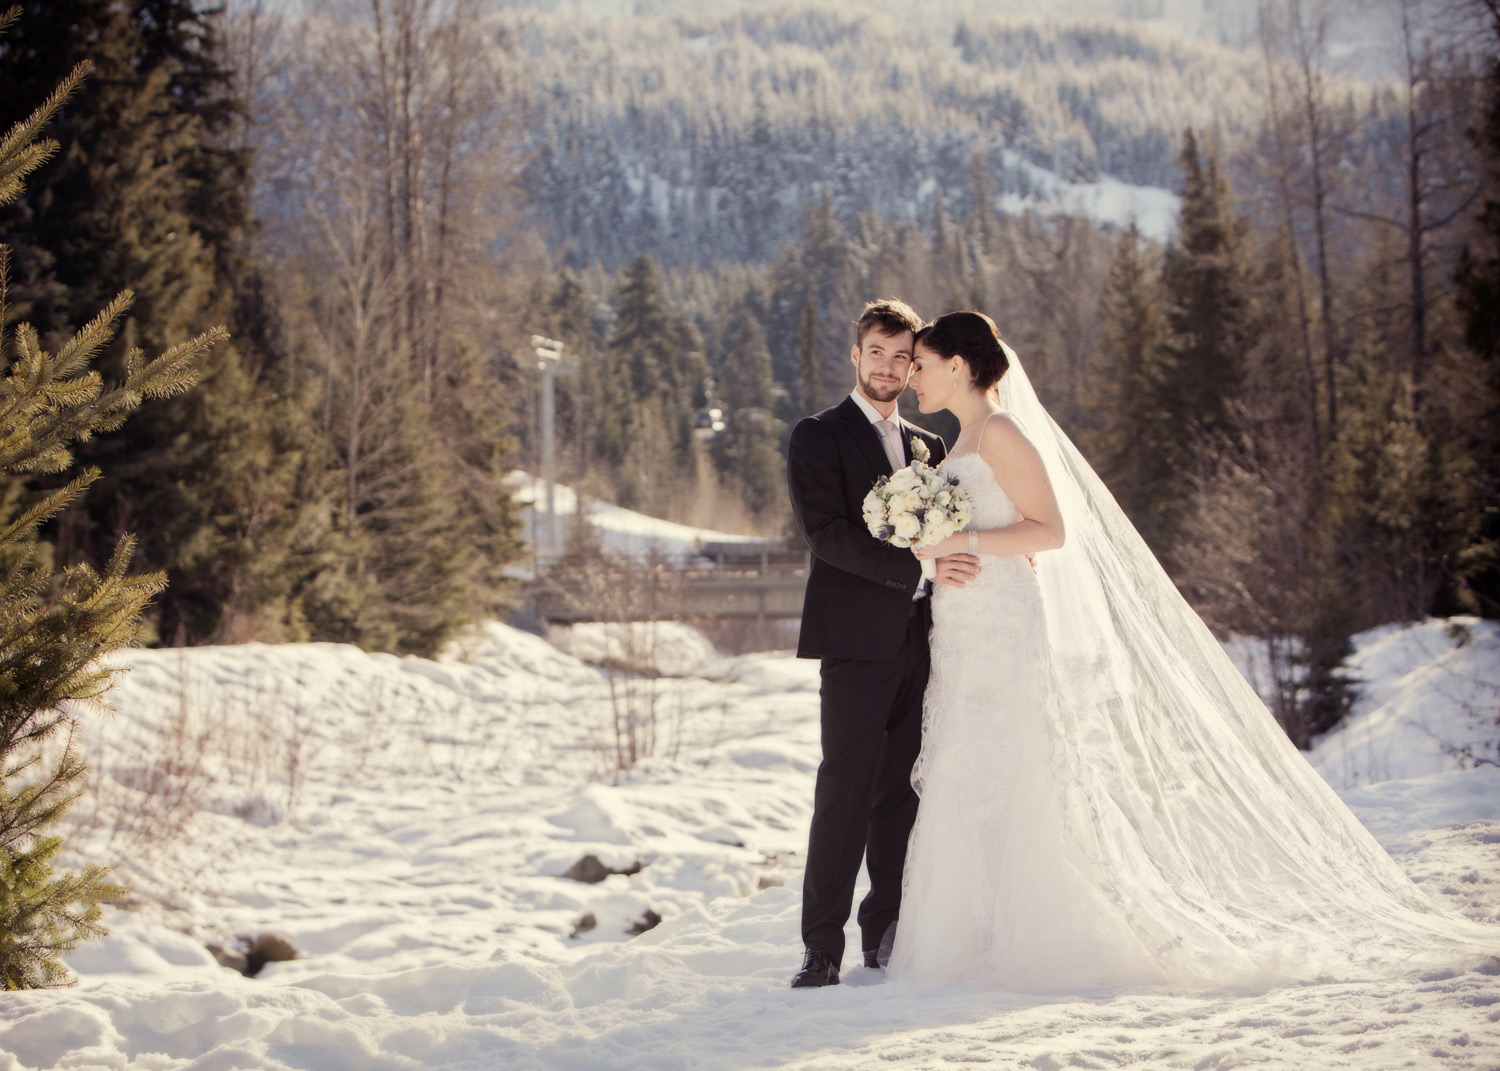 LeannePedersenPhotographers_DestinationWedding_Whistler_AnnieSimon0341.jpg